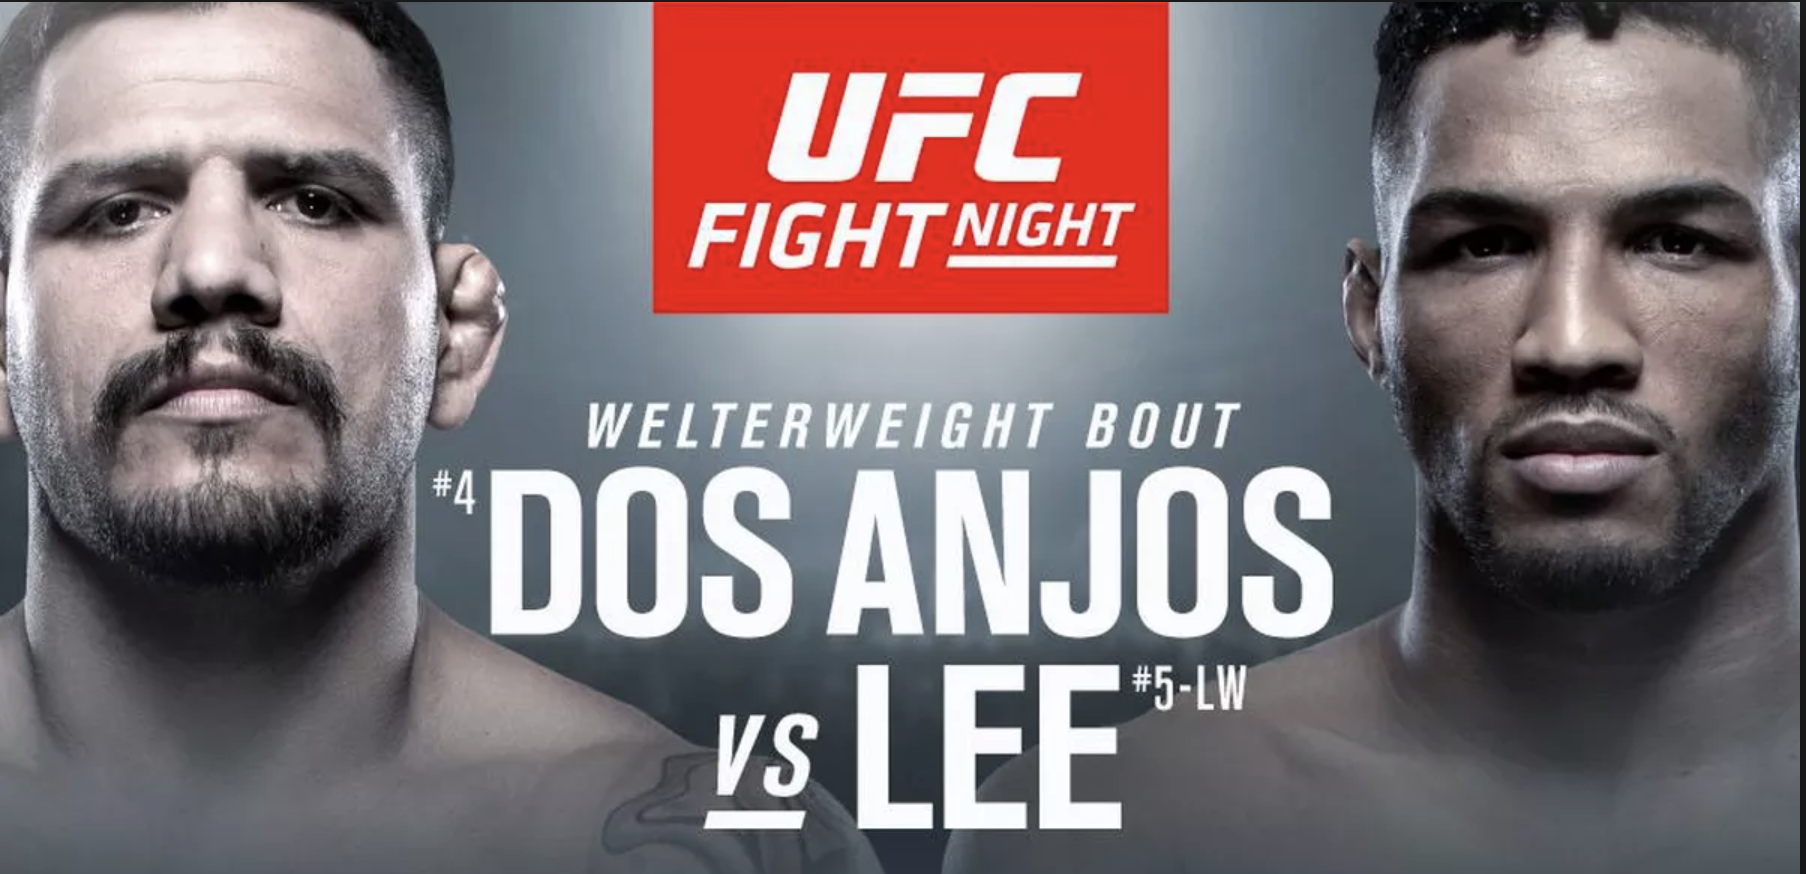 UFC Fight Night 152 Dos Anjos vs Lee -